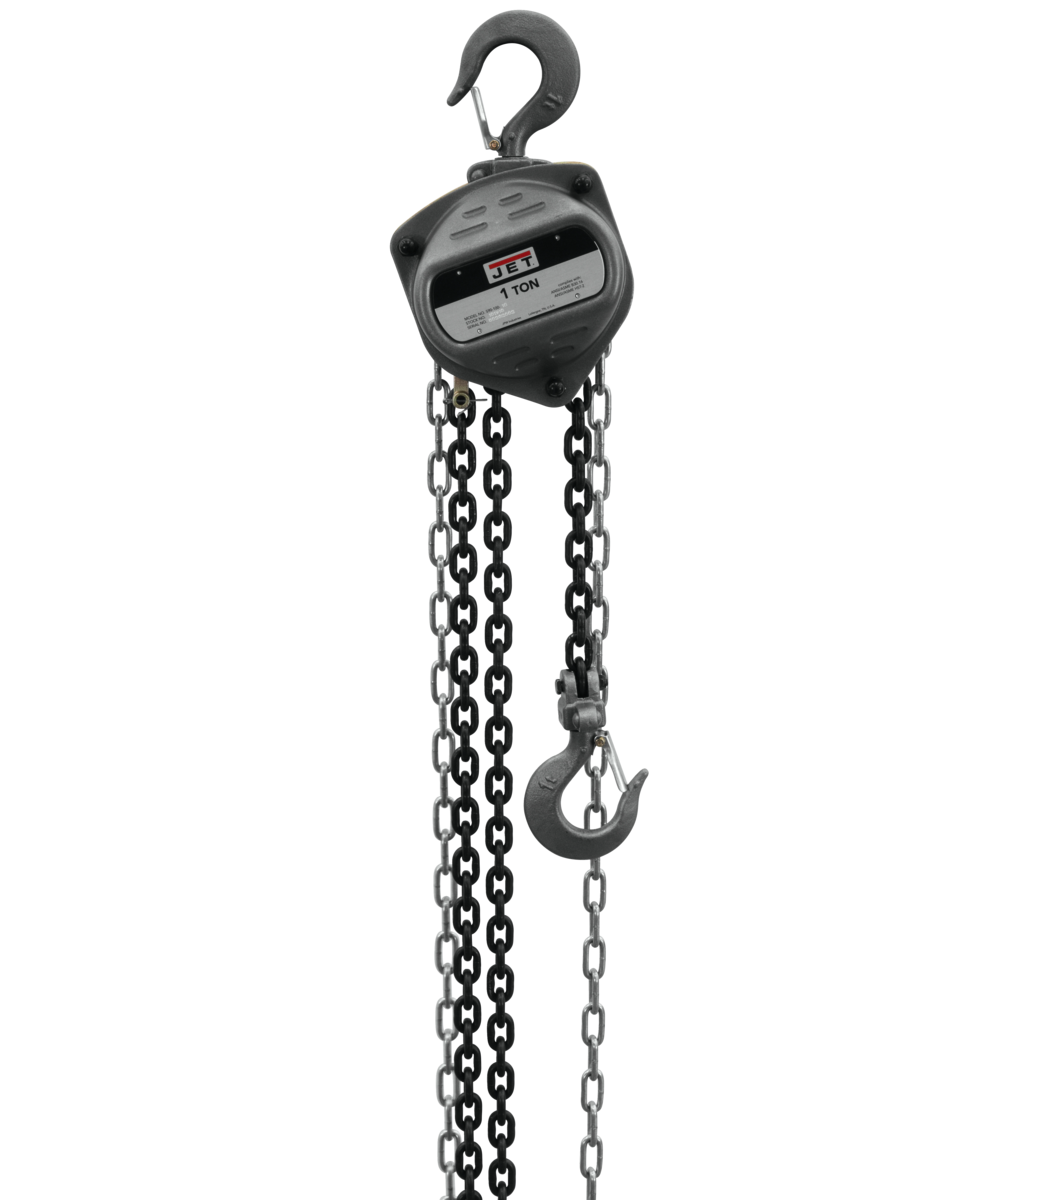 S90-100-20, 1-Ton Hand Chain Hoist With 20' Lift